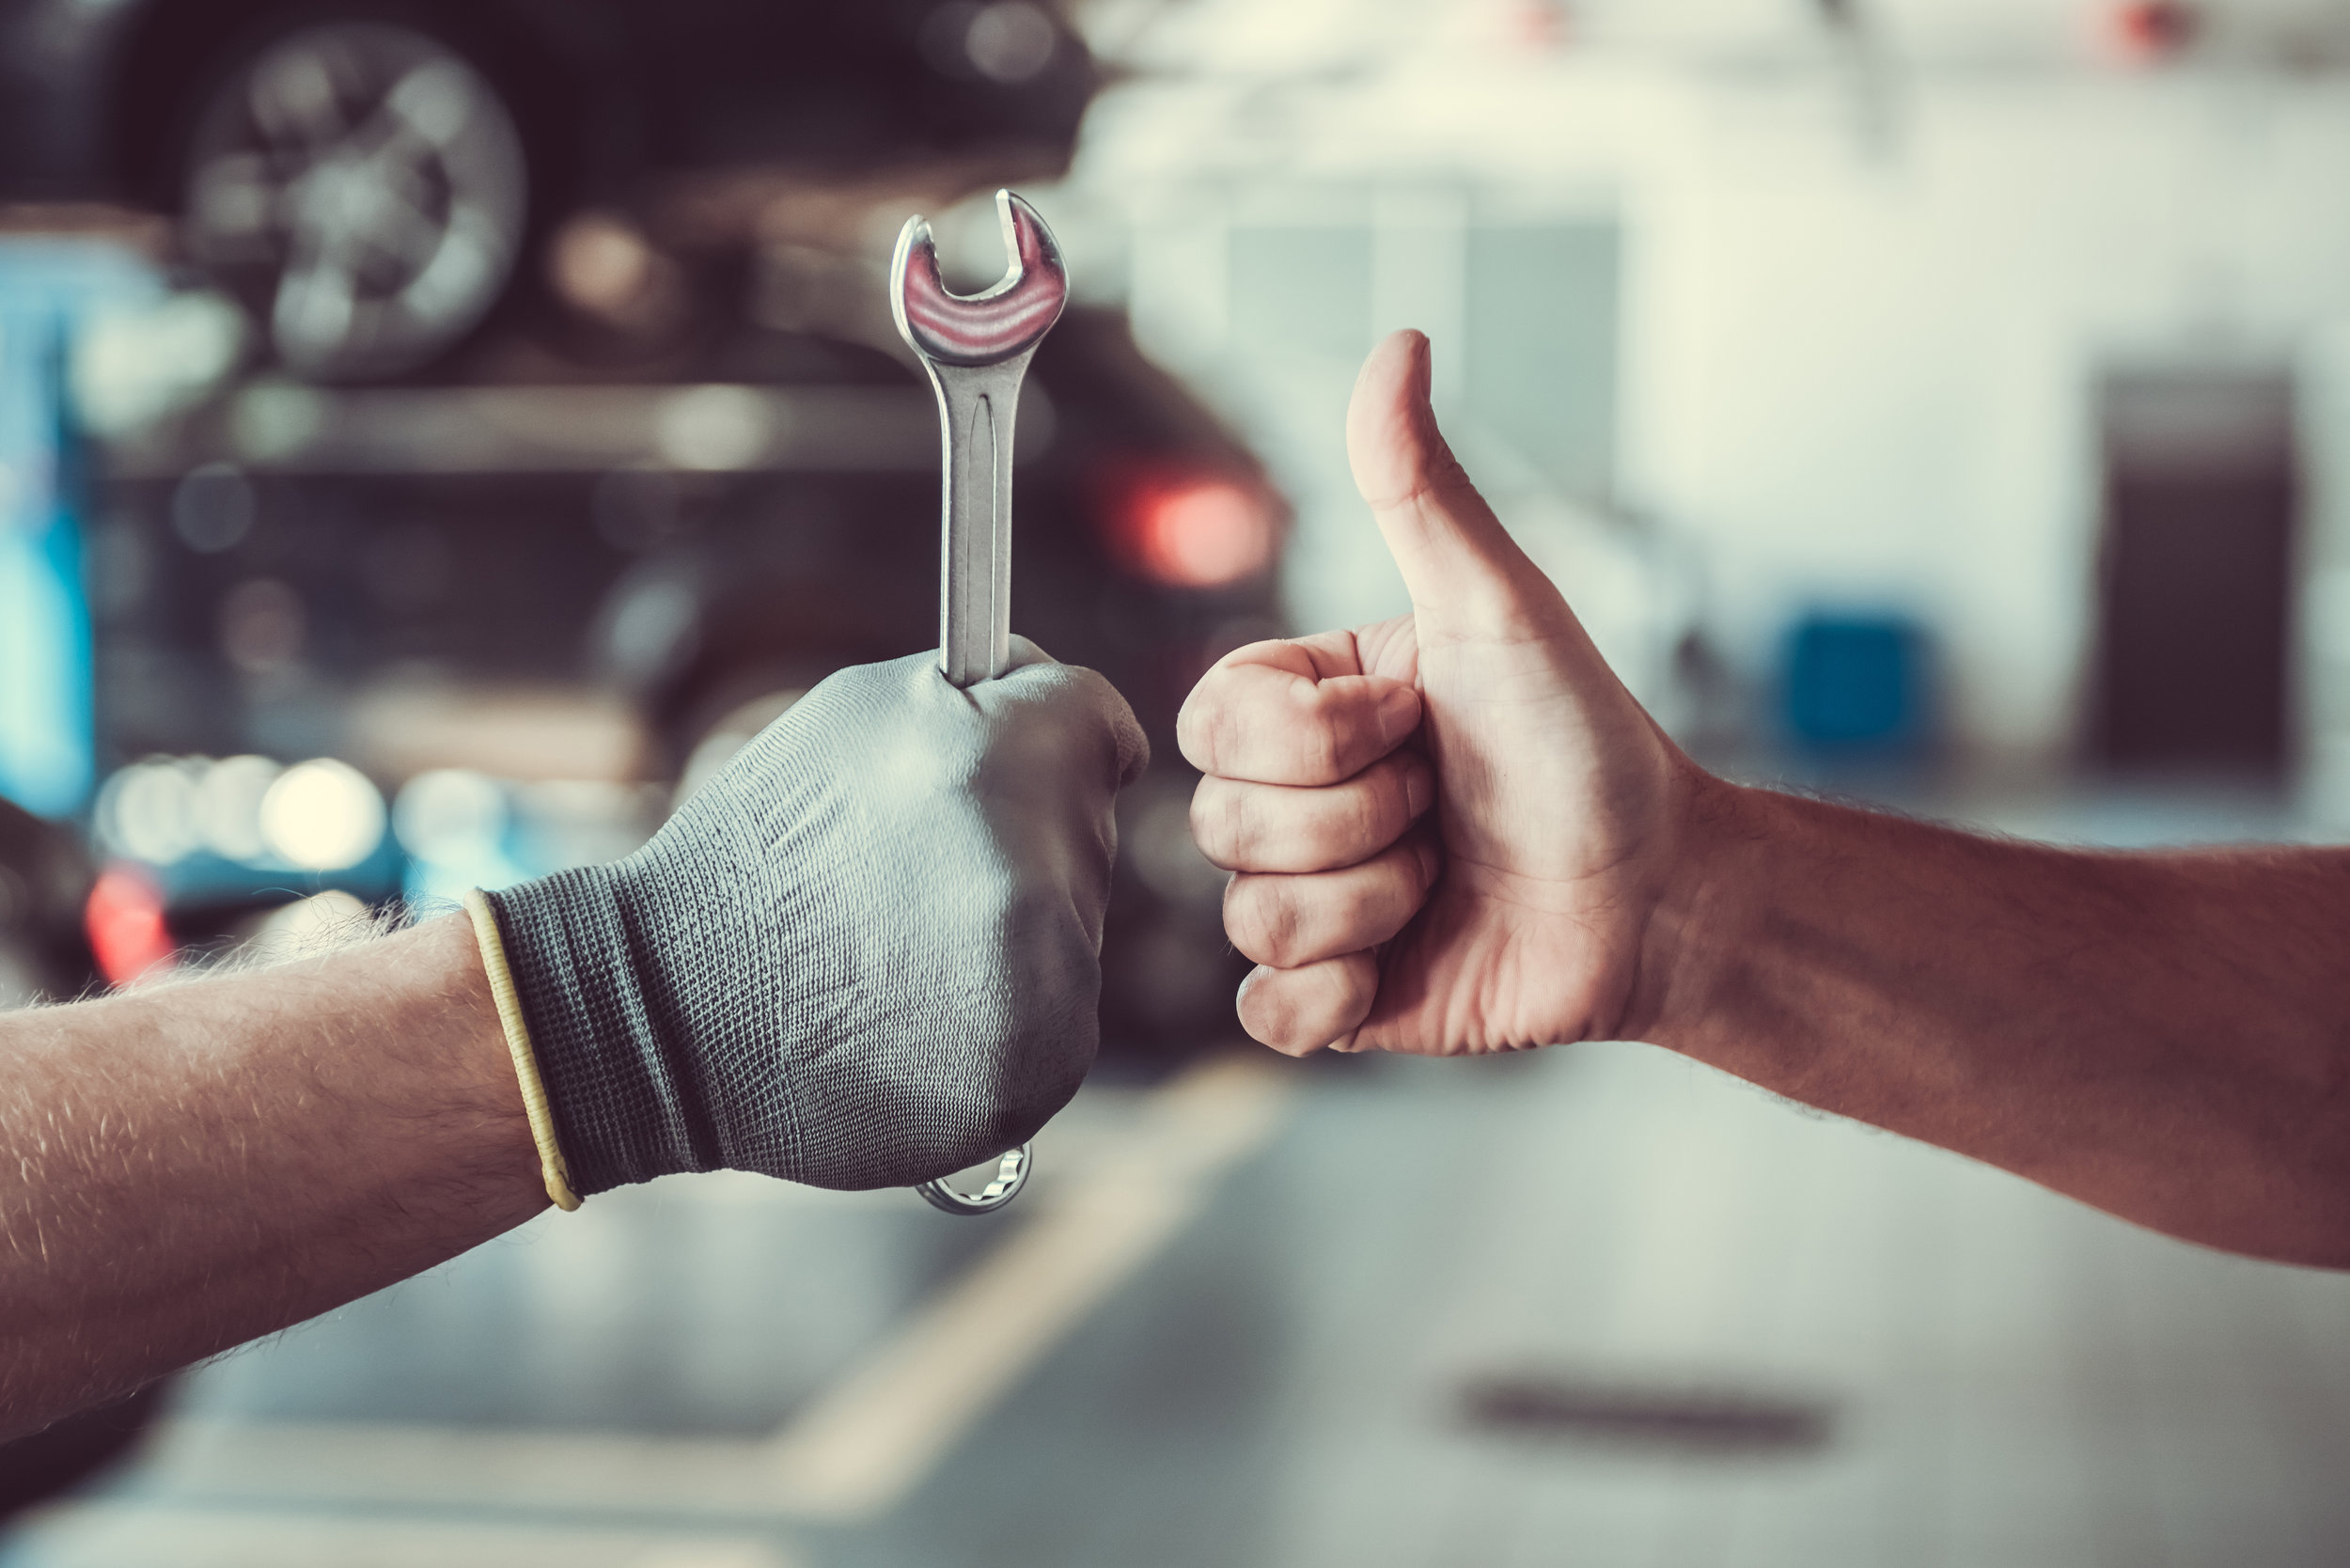 Family car body shop near Pittsburgh, PA with thumbs up reviews